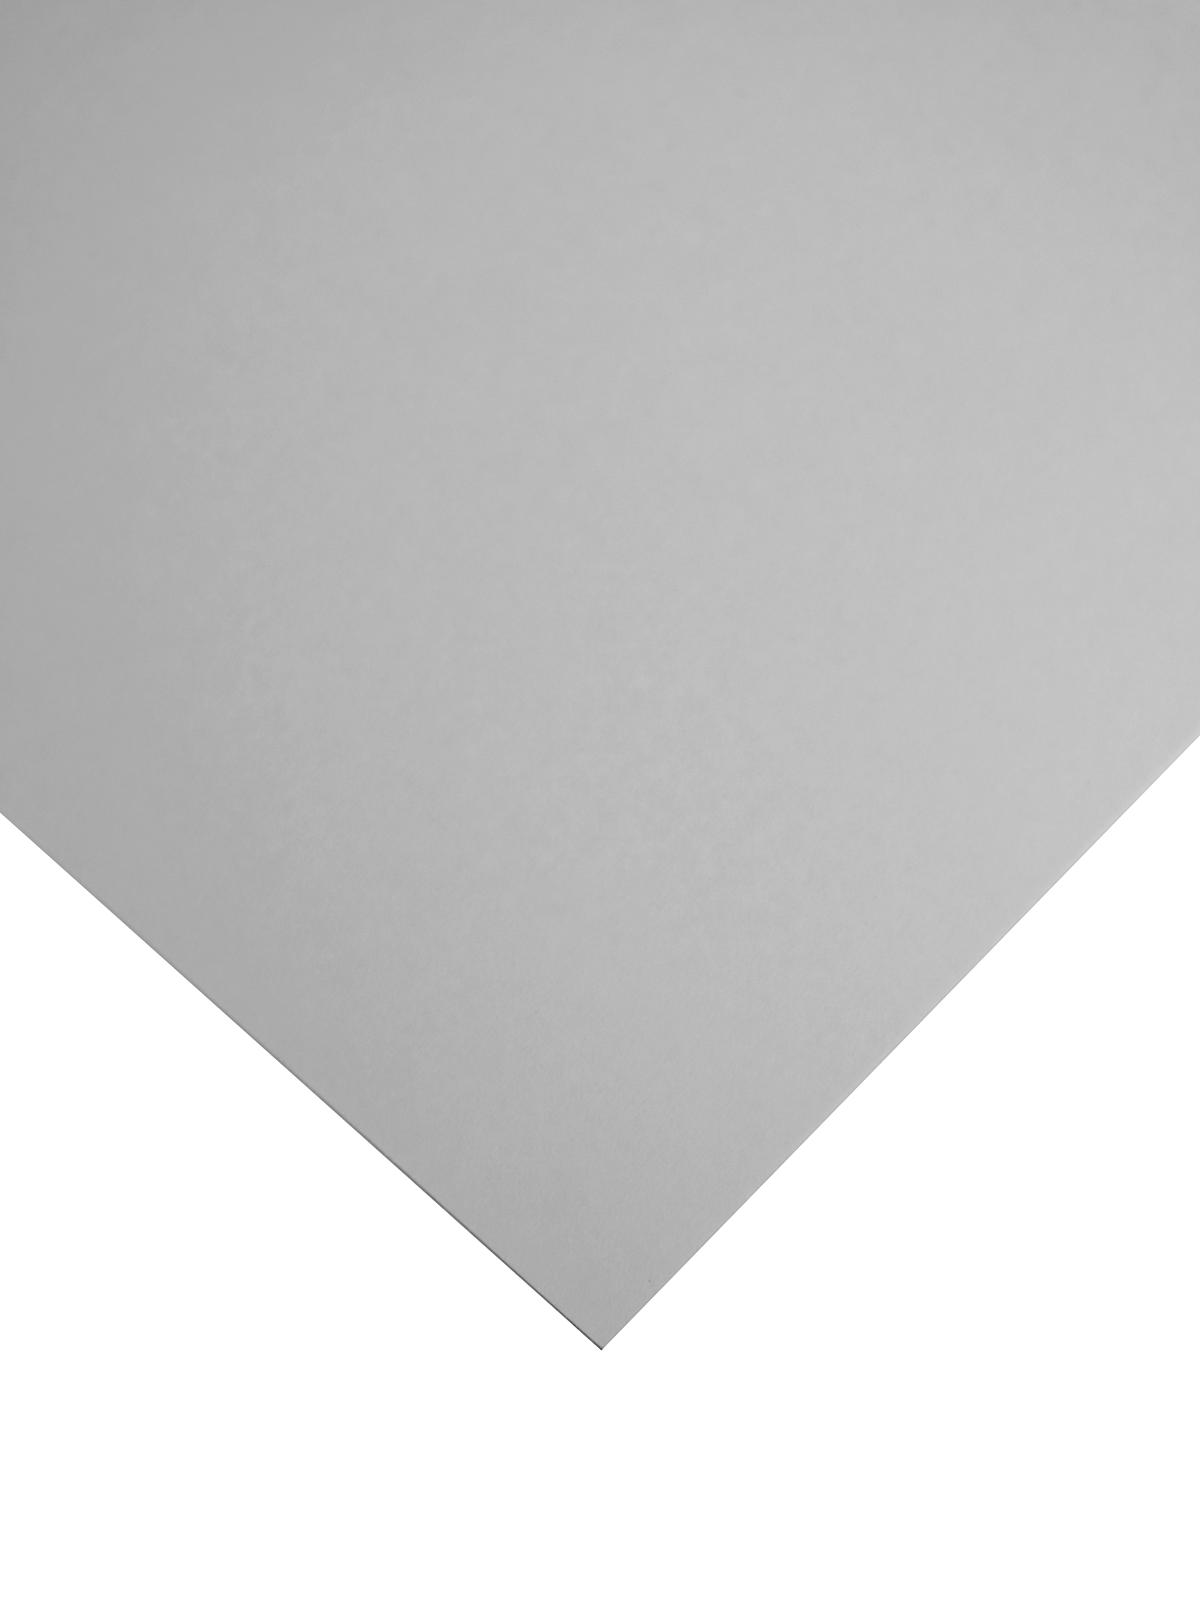 Hot Press Illustration Boards 15 In. X 20 In. Each No. 20